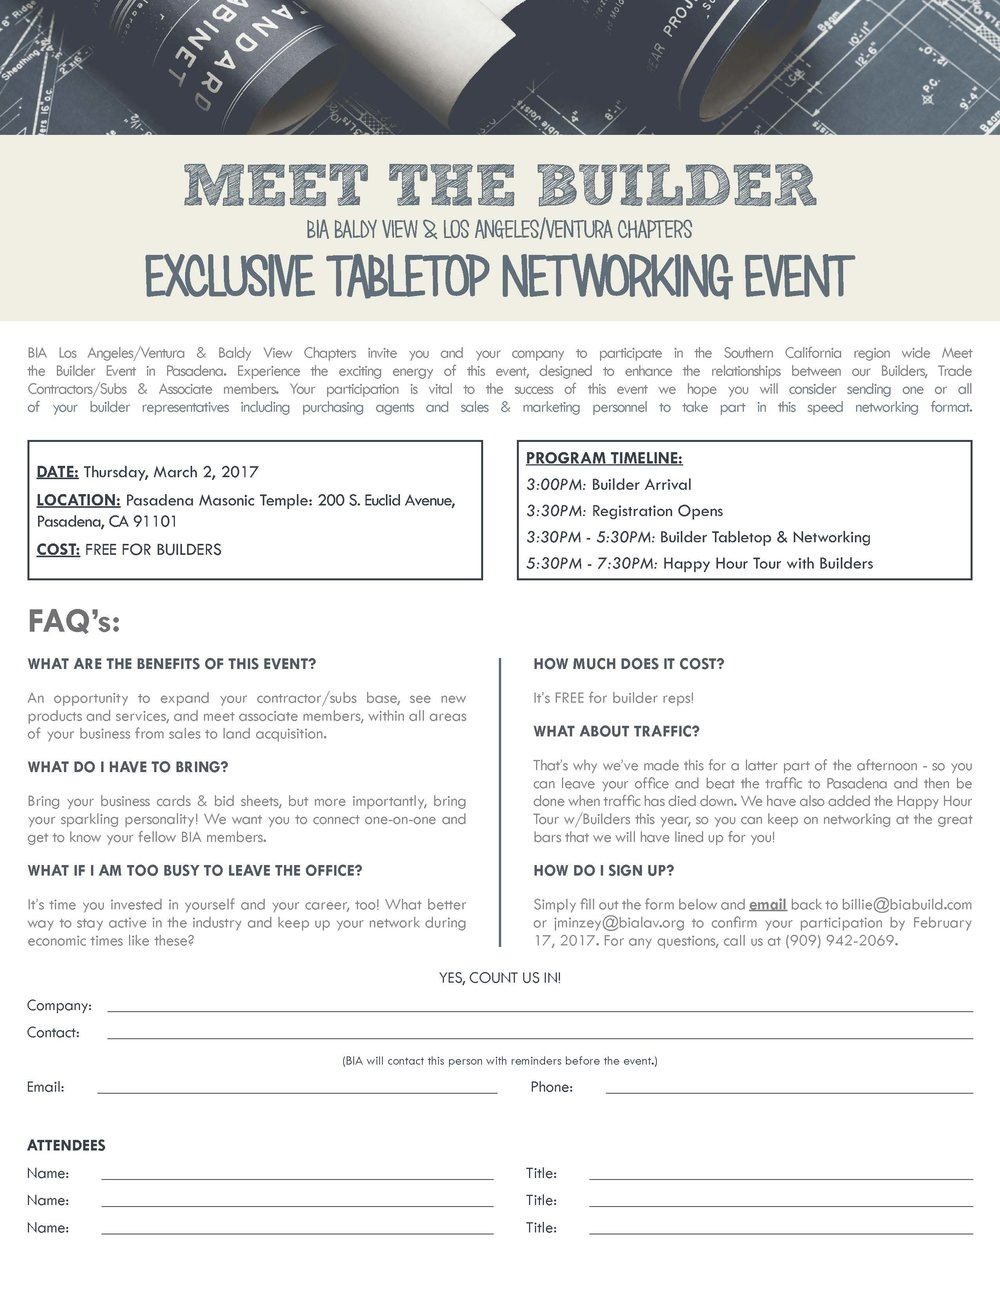 2017 meet the builder bia baldy view bia los angelesventura baldy view chapters invite you and your company to participate in the southern california region wide meet the builder event in reheart Choice Image